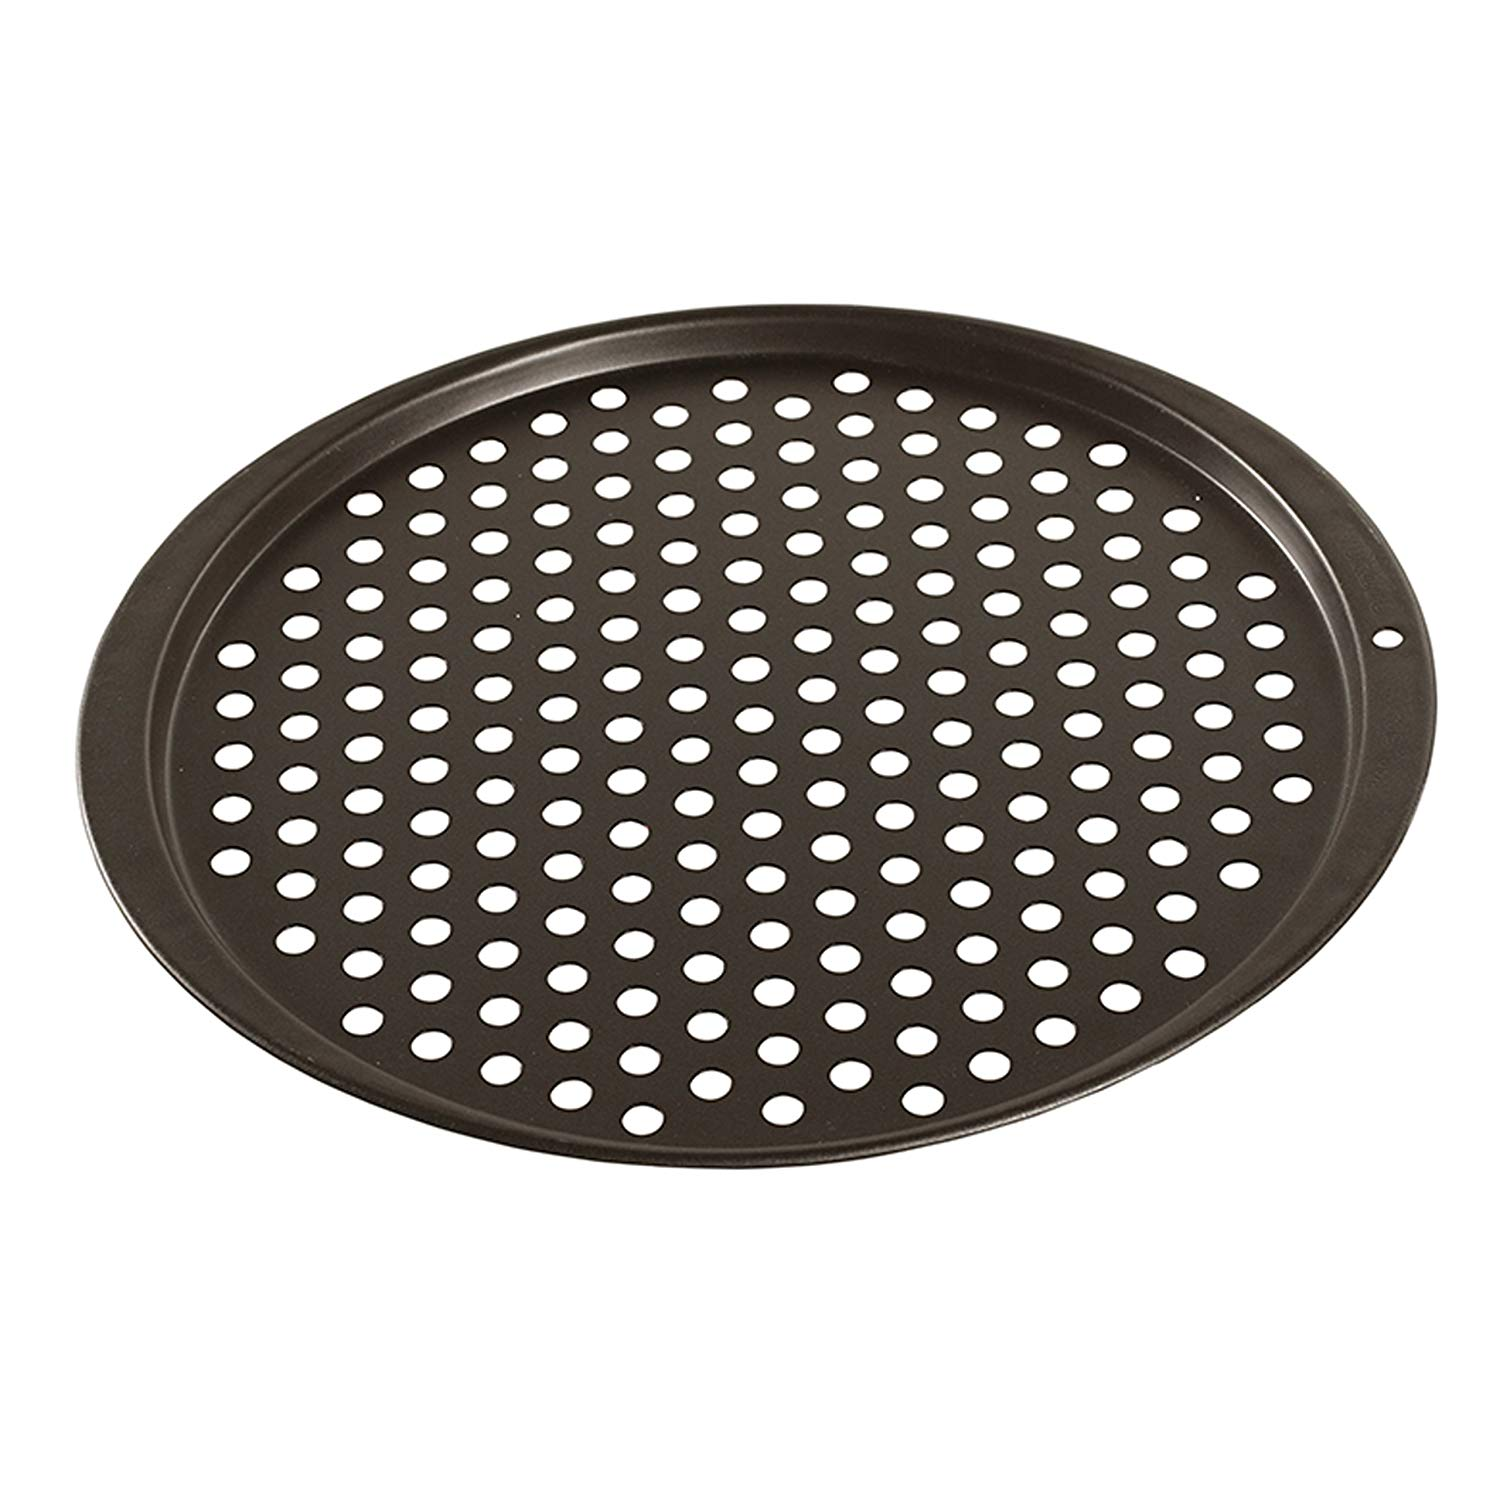 Nordic ware 365 indoor/outdoor large pizza pan